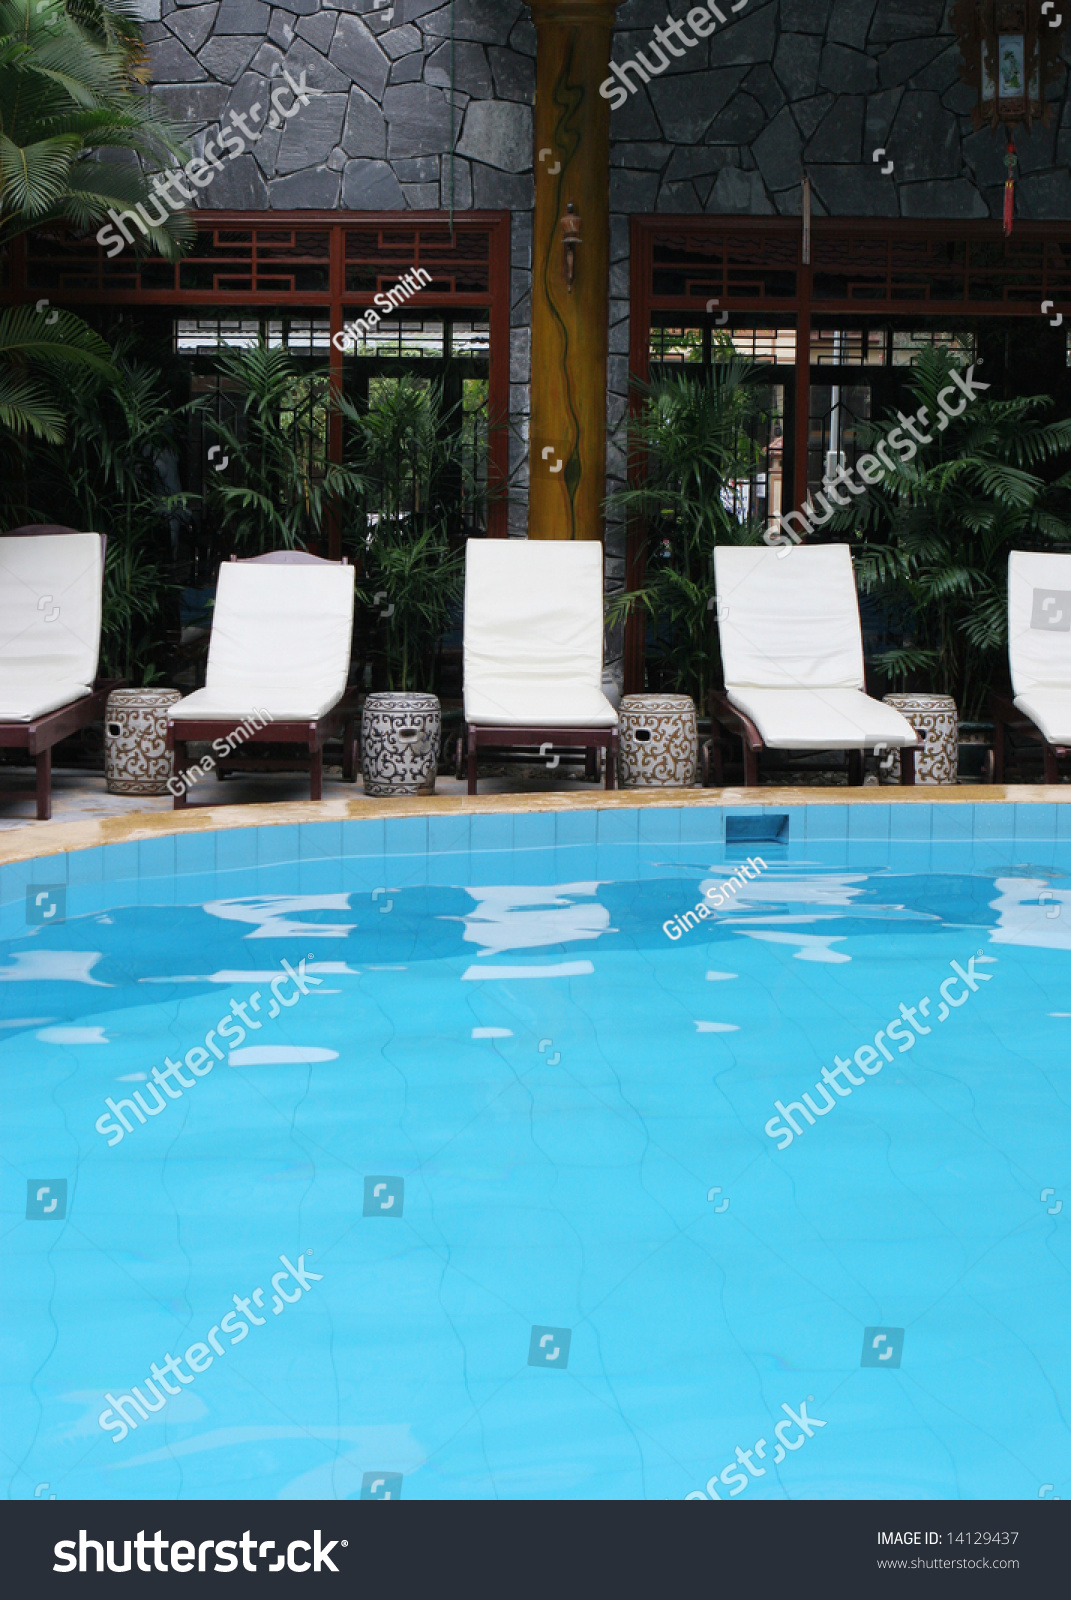 Pool Deck Chairs Swimming Pool Deck Chairs Summer Stock Photo Edit Now 14129437